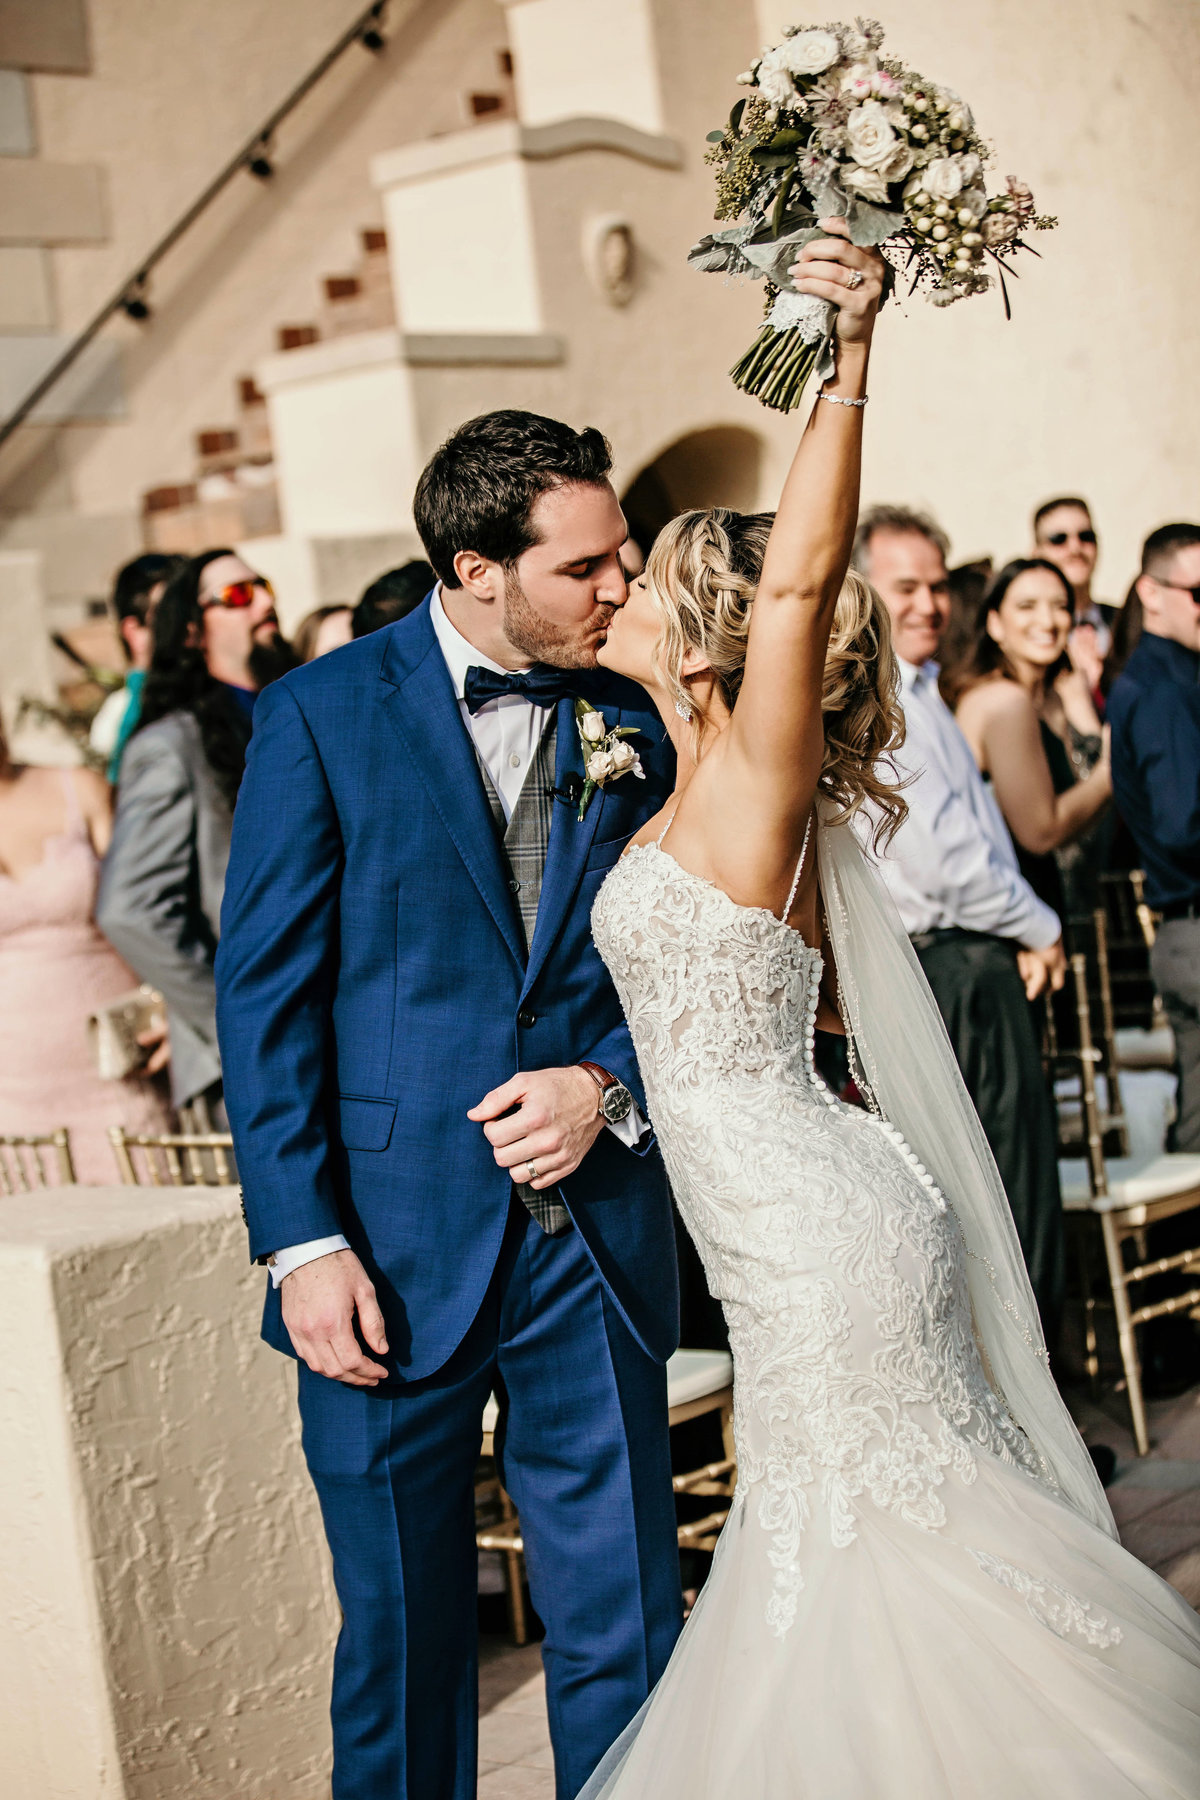 An image of a bridal couple happily kissing after their marriage ceremony as the bride, in her beautiful dress, holds up her bouquet while the guests smile and look on by Garry & Stacy Photography Co - Tampa wedding photographer